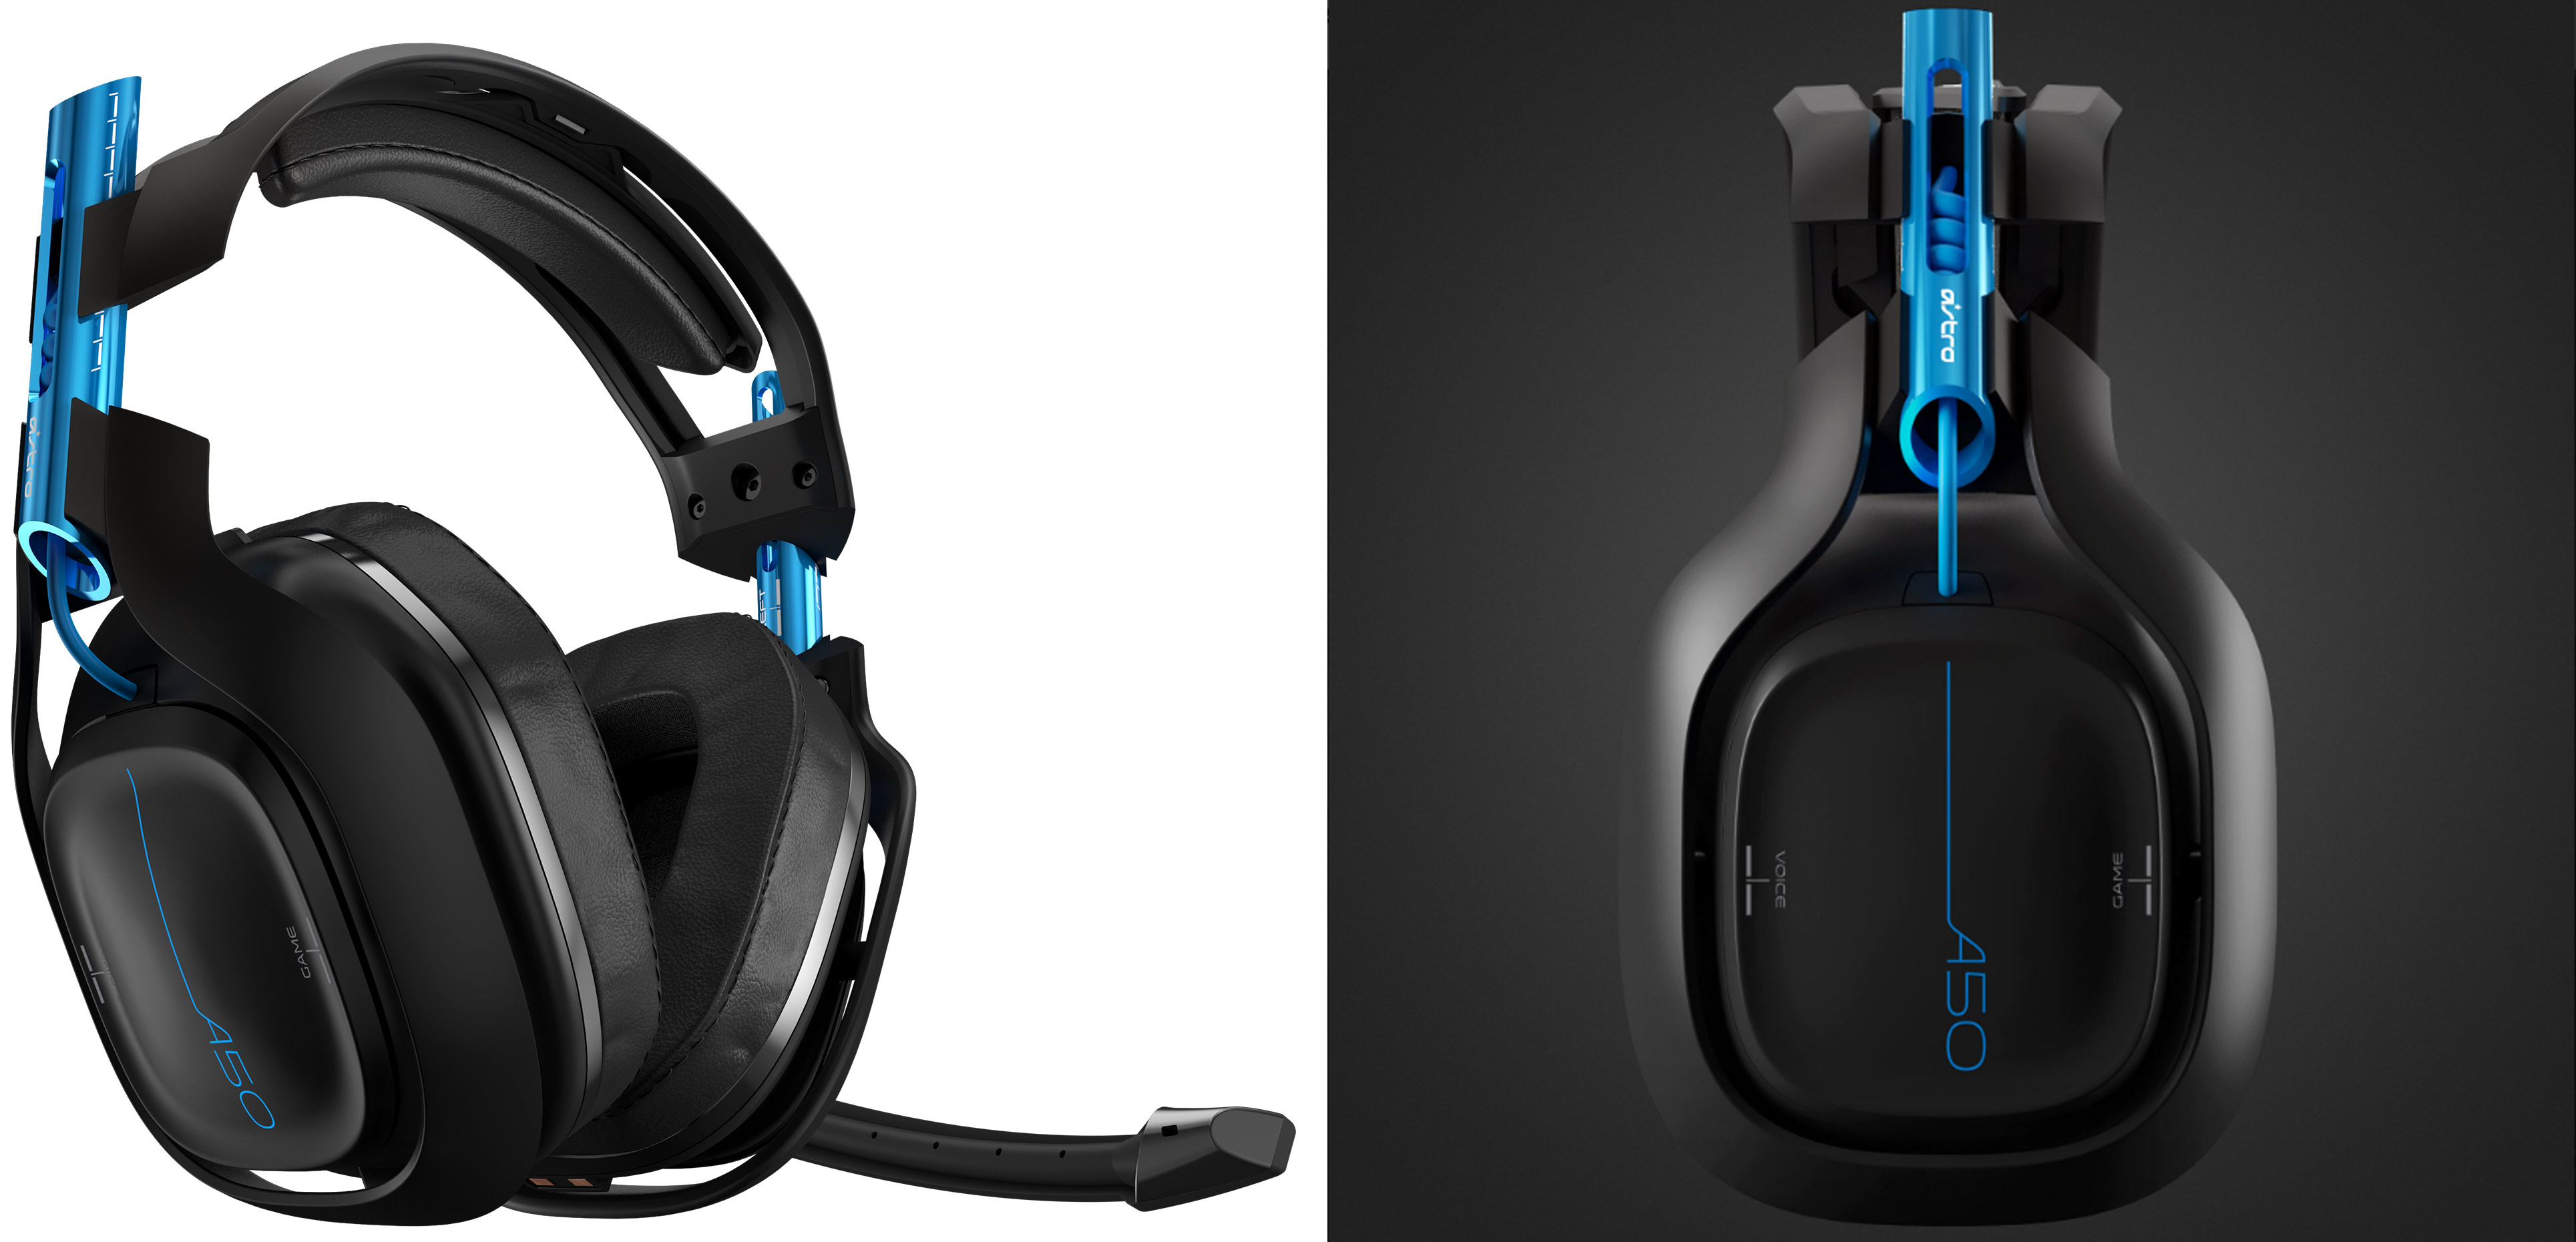 The New ASTRO A50 Wireless Headset Features New Base